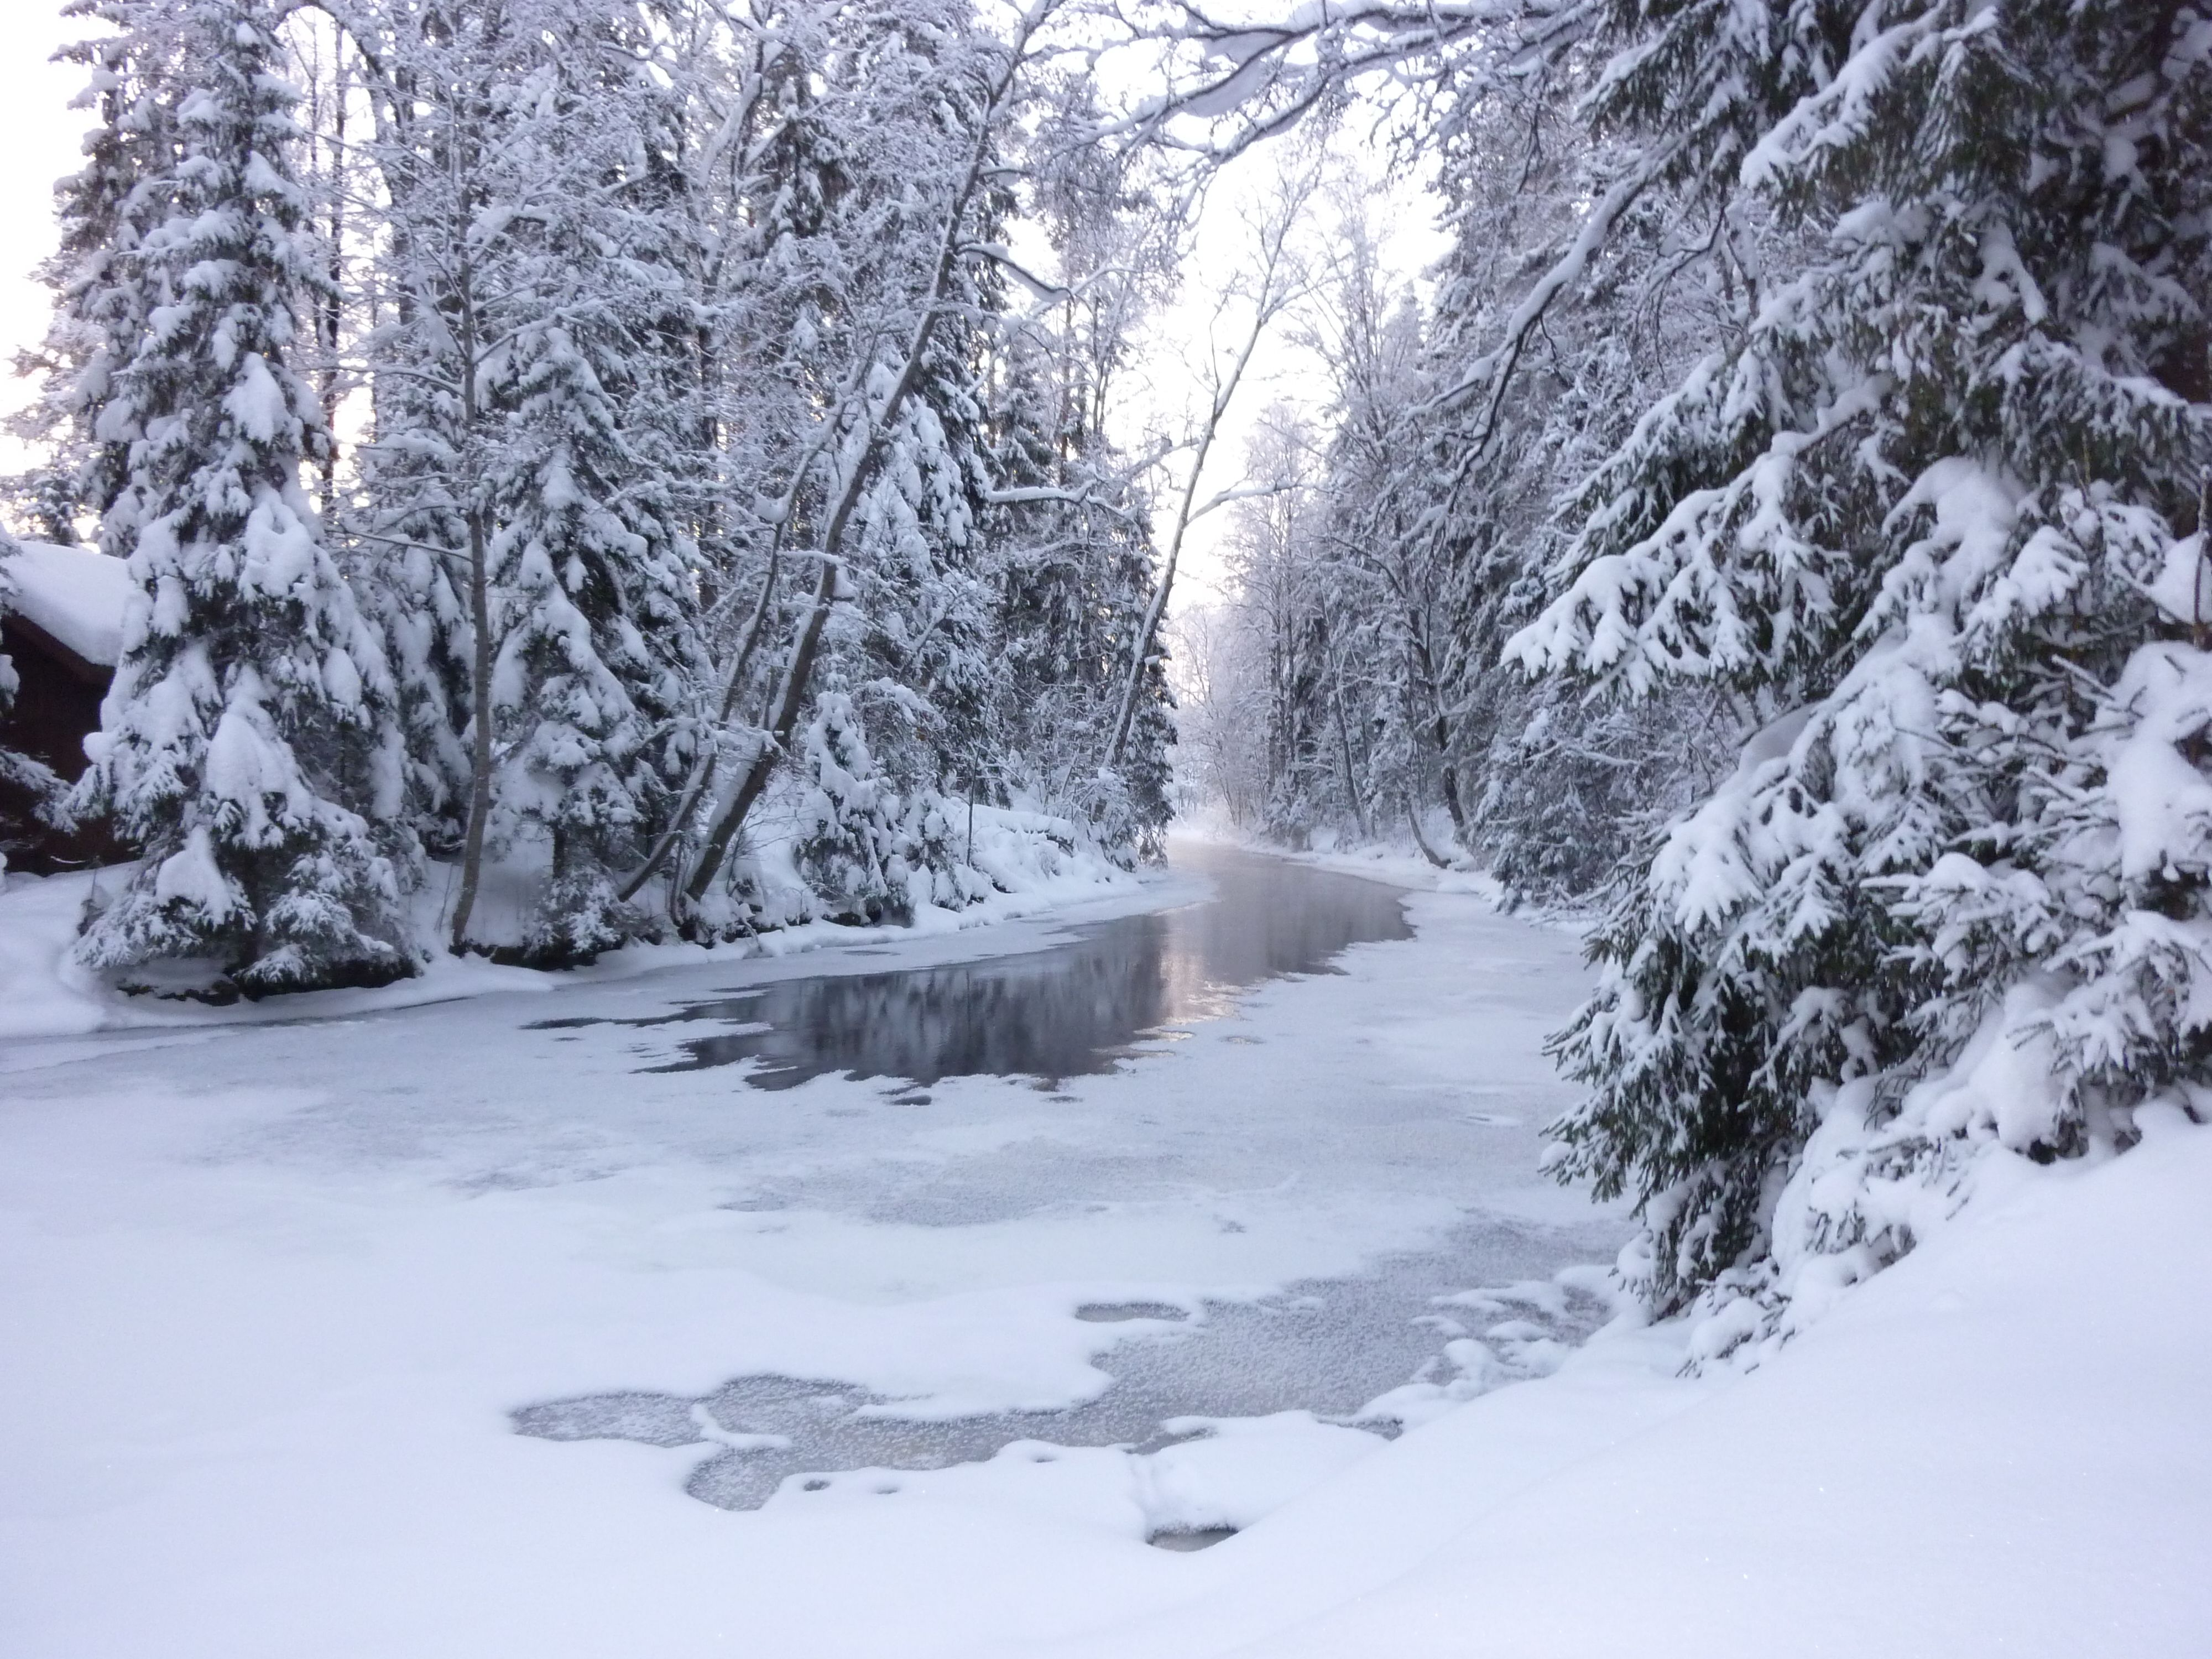 The tiny River Suonenjoki charms in midwinter.